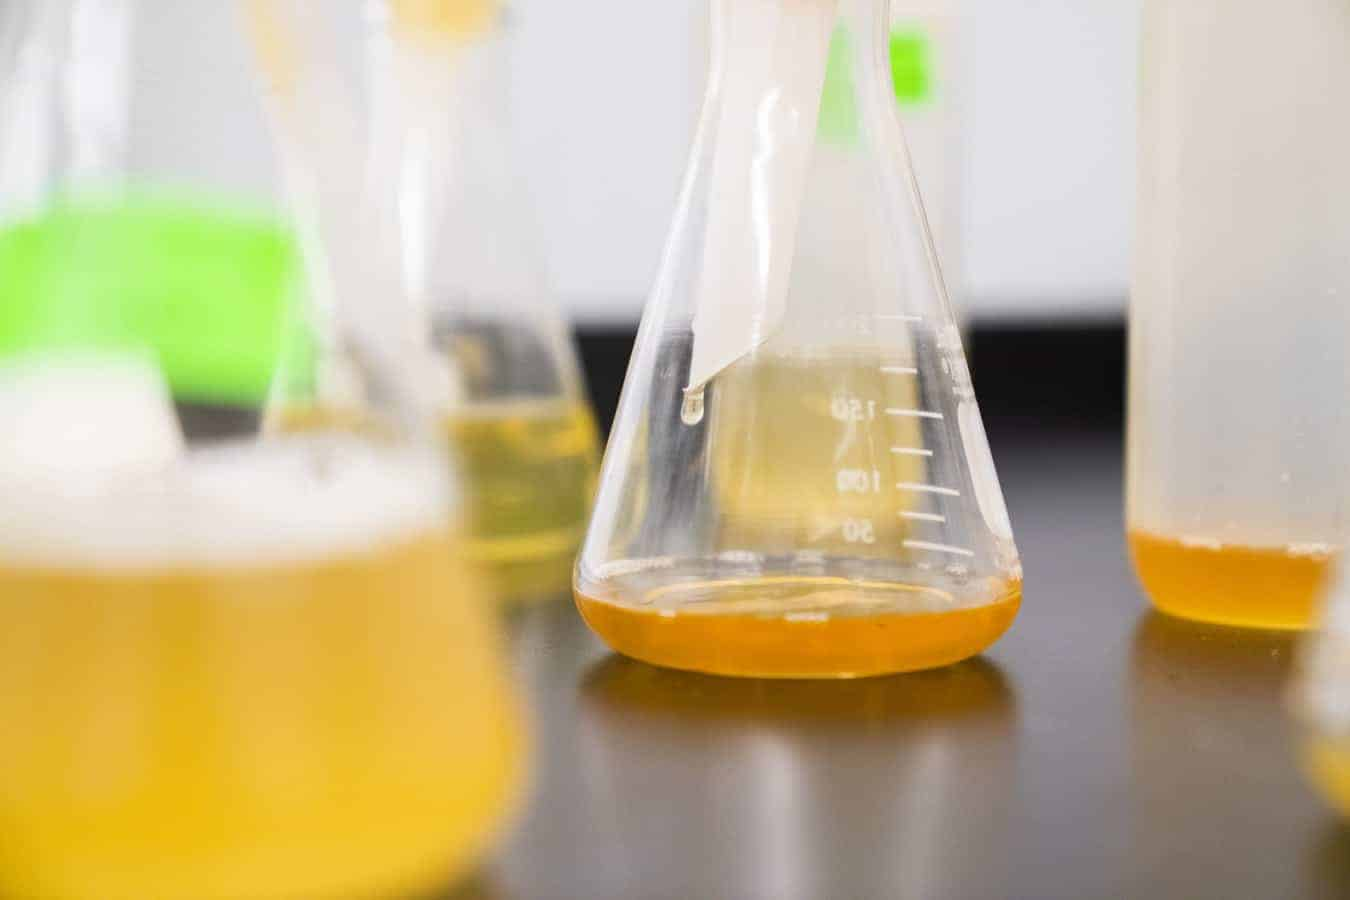 A clear erlenmeyer flask with orange liquid in it